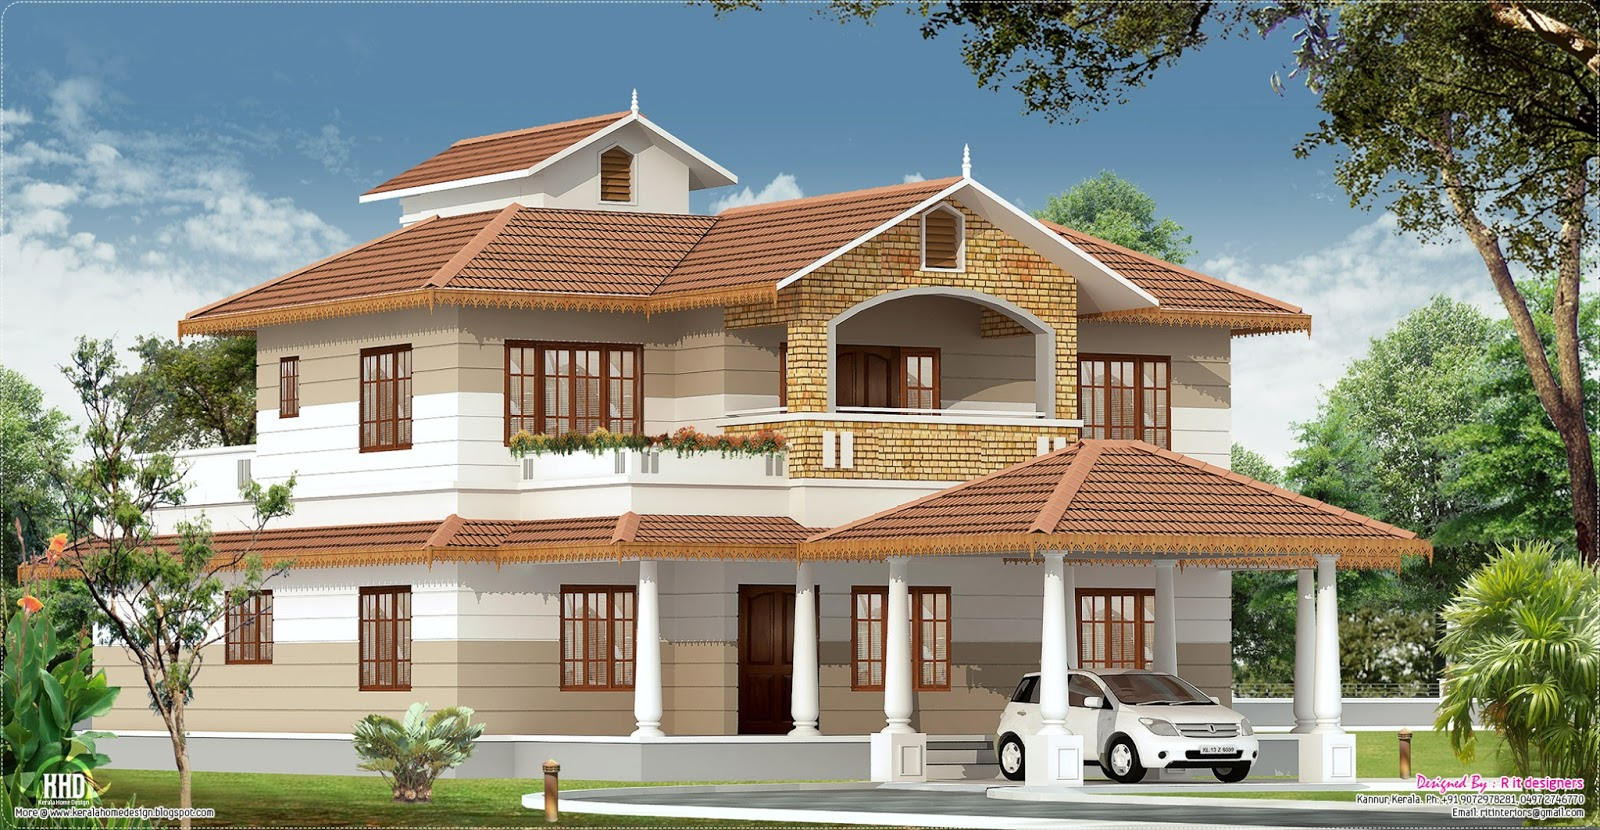 2700 kerala home with interior designs kerala for Kerala house models photos